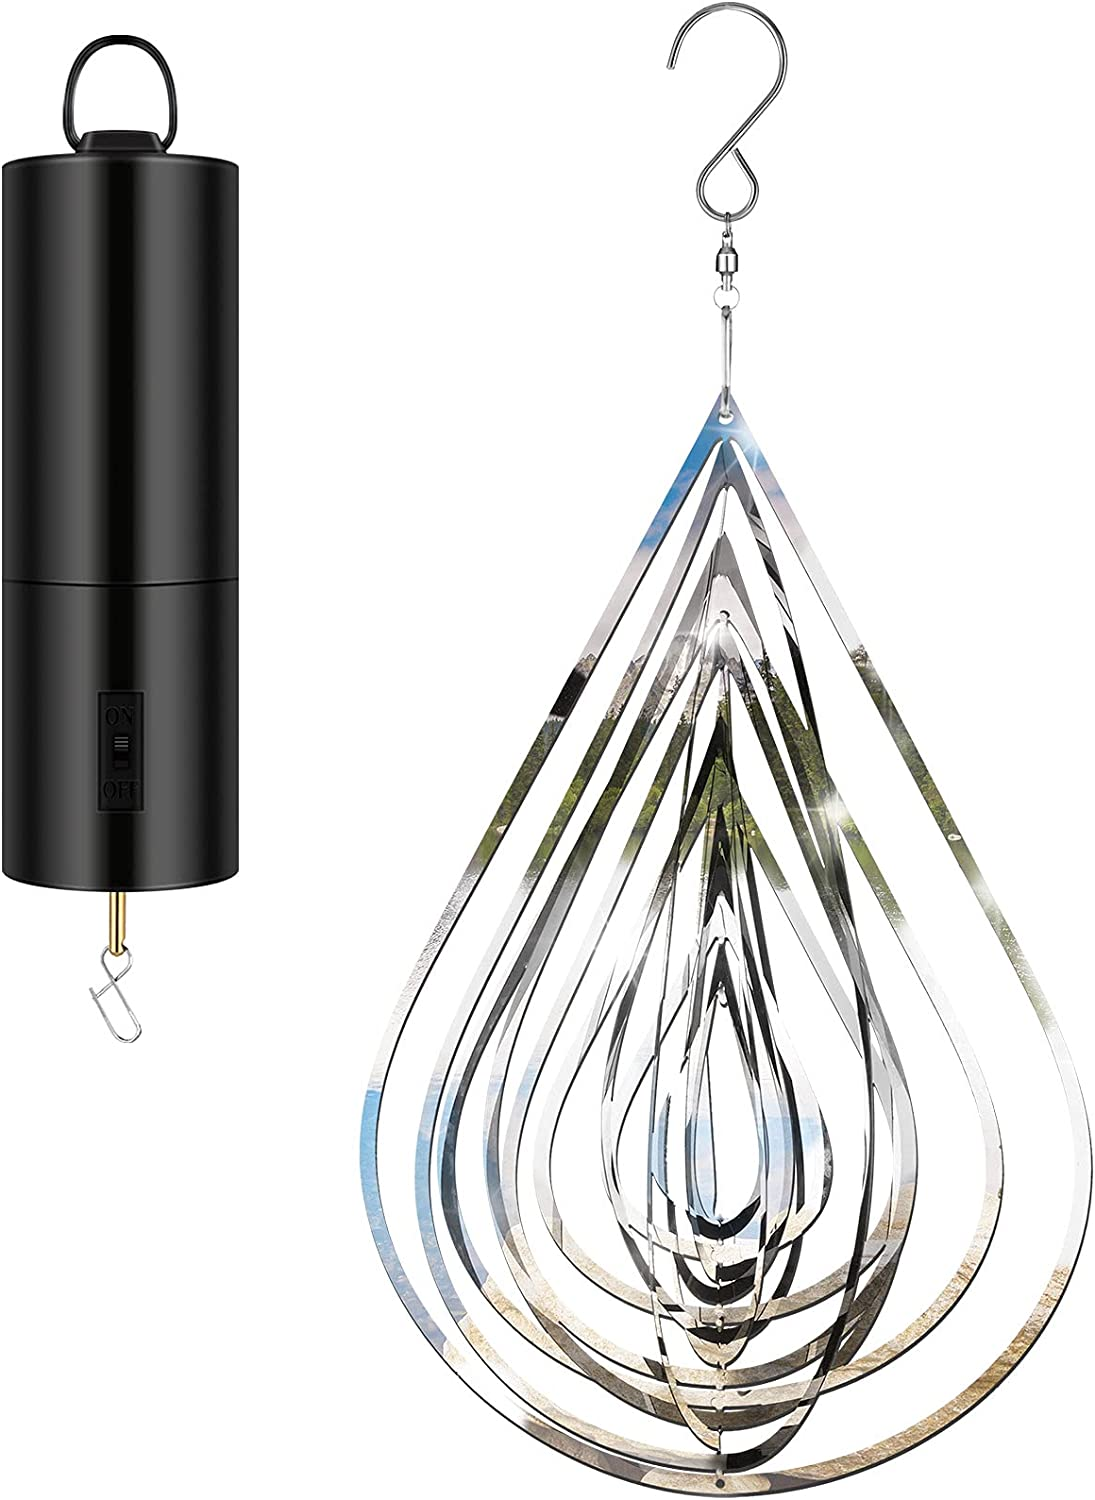 3D Silver Water Drop-Shaped Wind Spinner Stainless Steel Hanging Wind Spinner Outdoor Decor 3D Flowing-Light Effect Decor with Outdoor Metal Motor and Hook for Outdoor Garden House Hanging Decoration